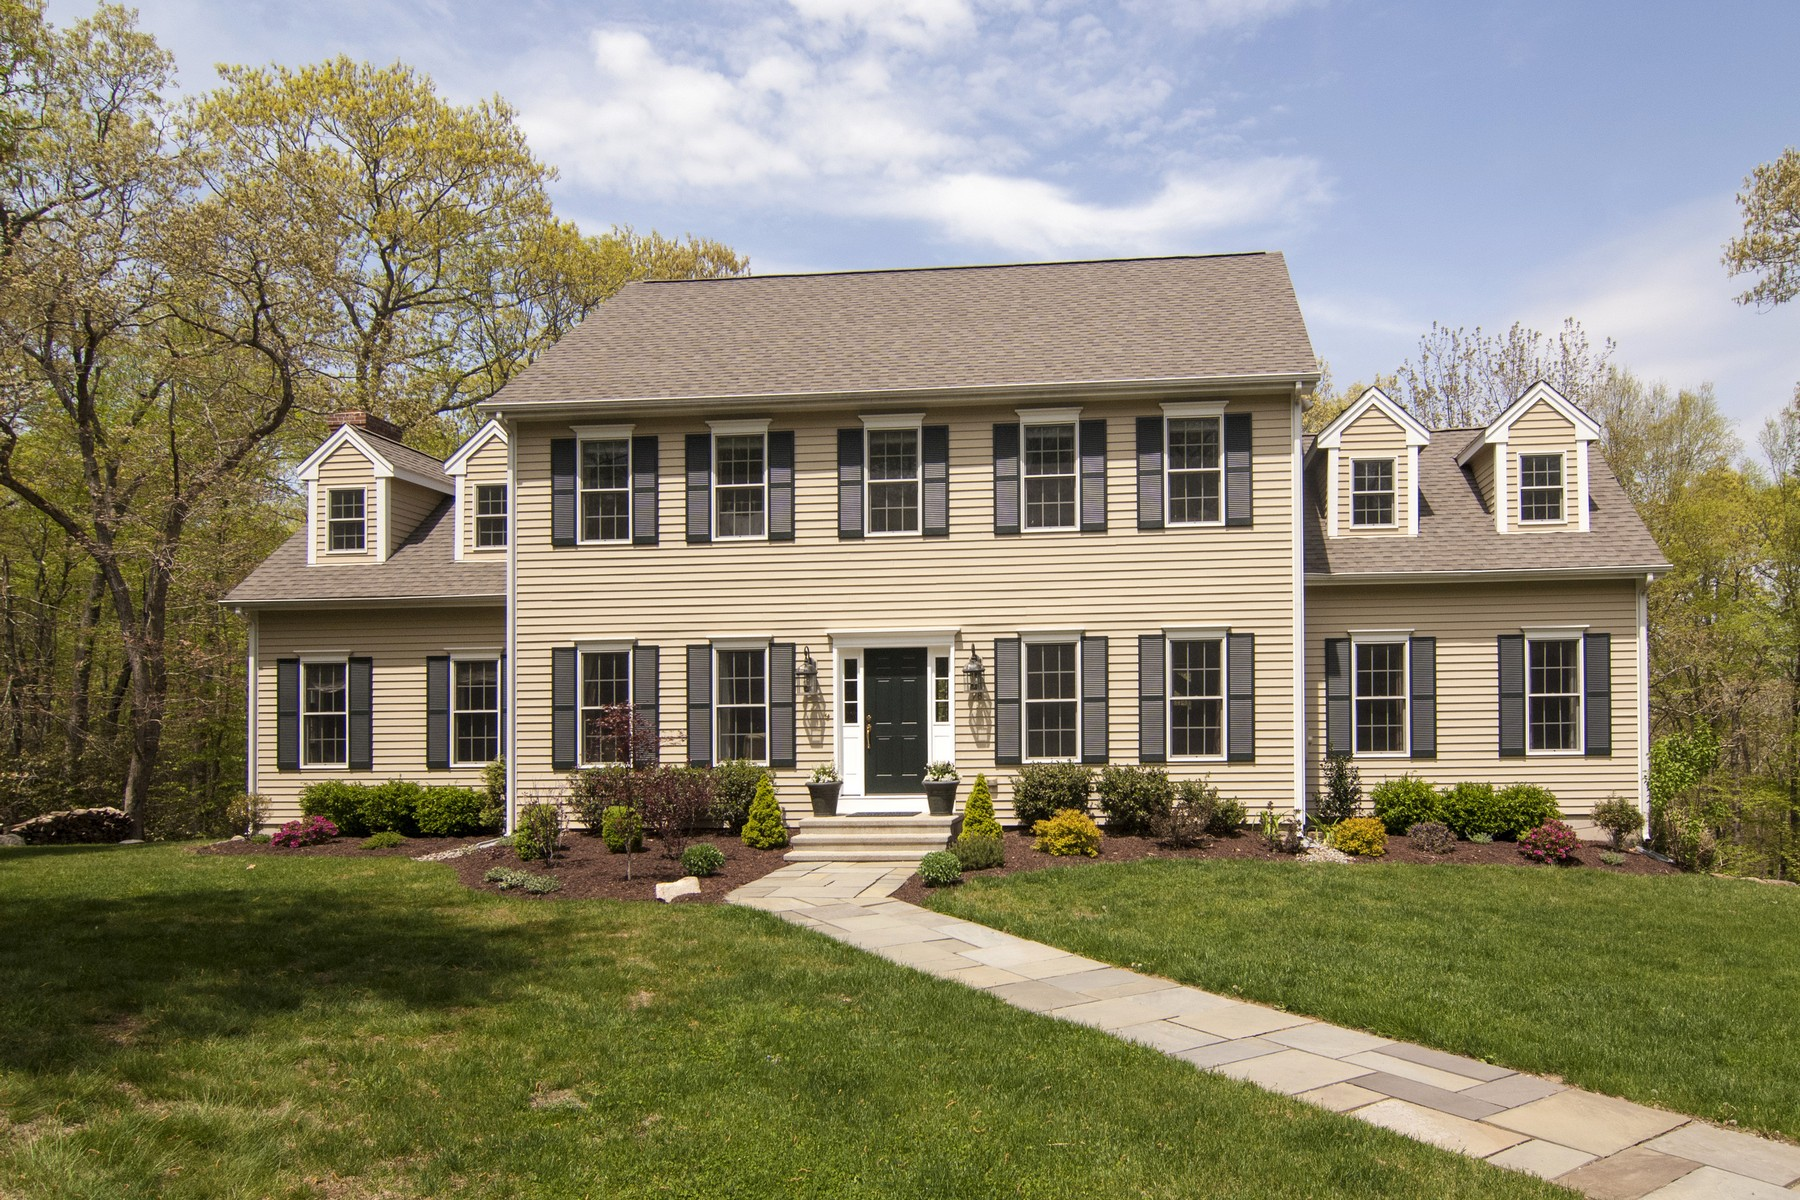 Single Family Home for Sale at Ideally Located! Close to Essex & Deep River Villages 78 Meadow Woods Rd Deep River, Connecticut 06417 United States